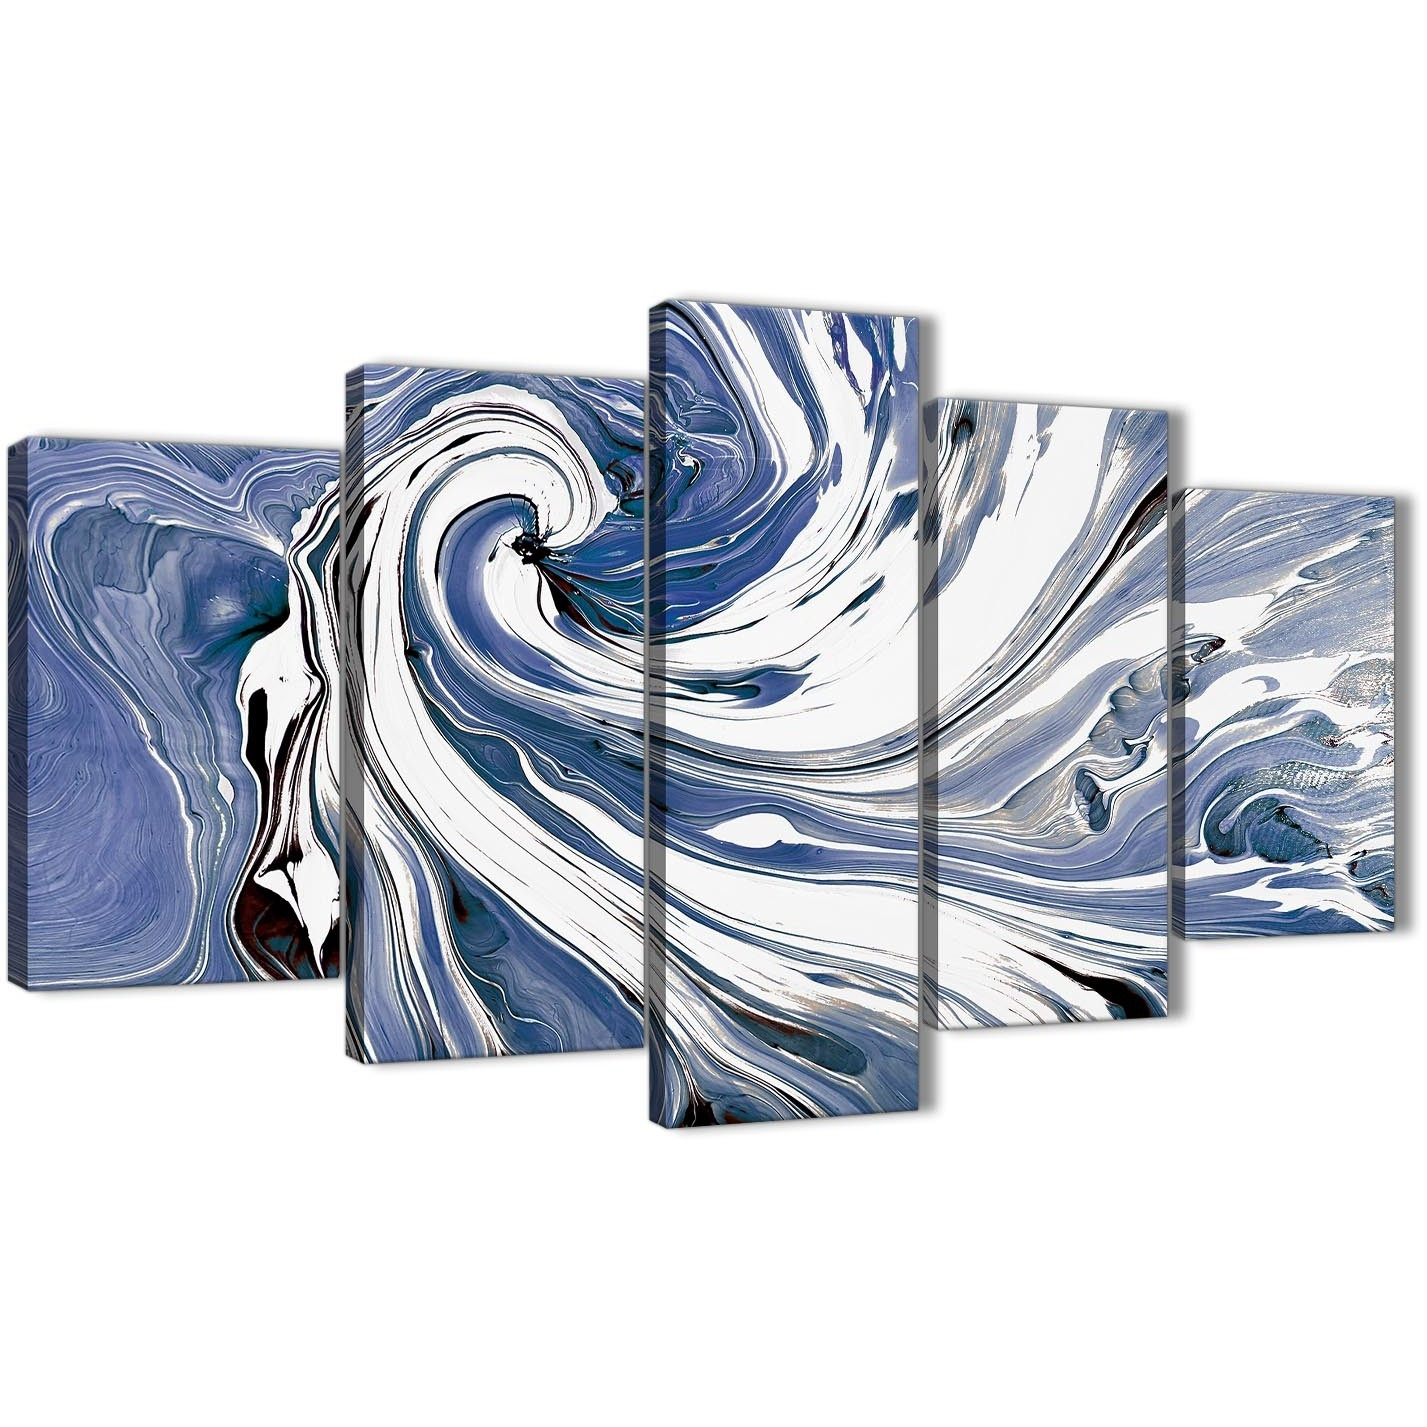 Extra Large Indigo Blue White Swirls Modern Abstract Canvas Wall Art inside Abstract Oversized Canvas Wall Art (Image 8 of 20)